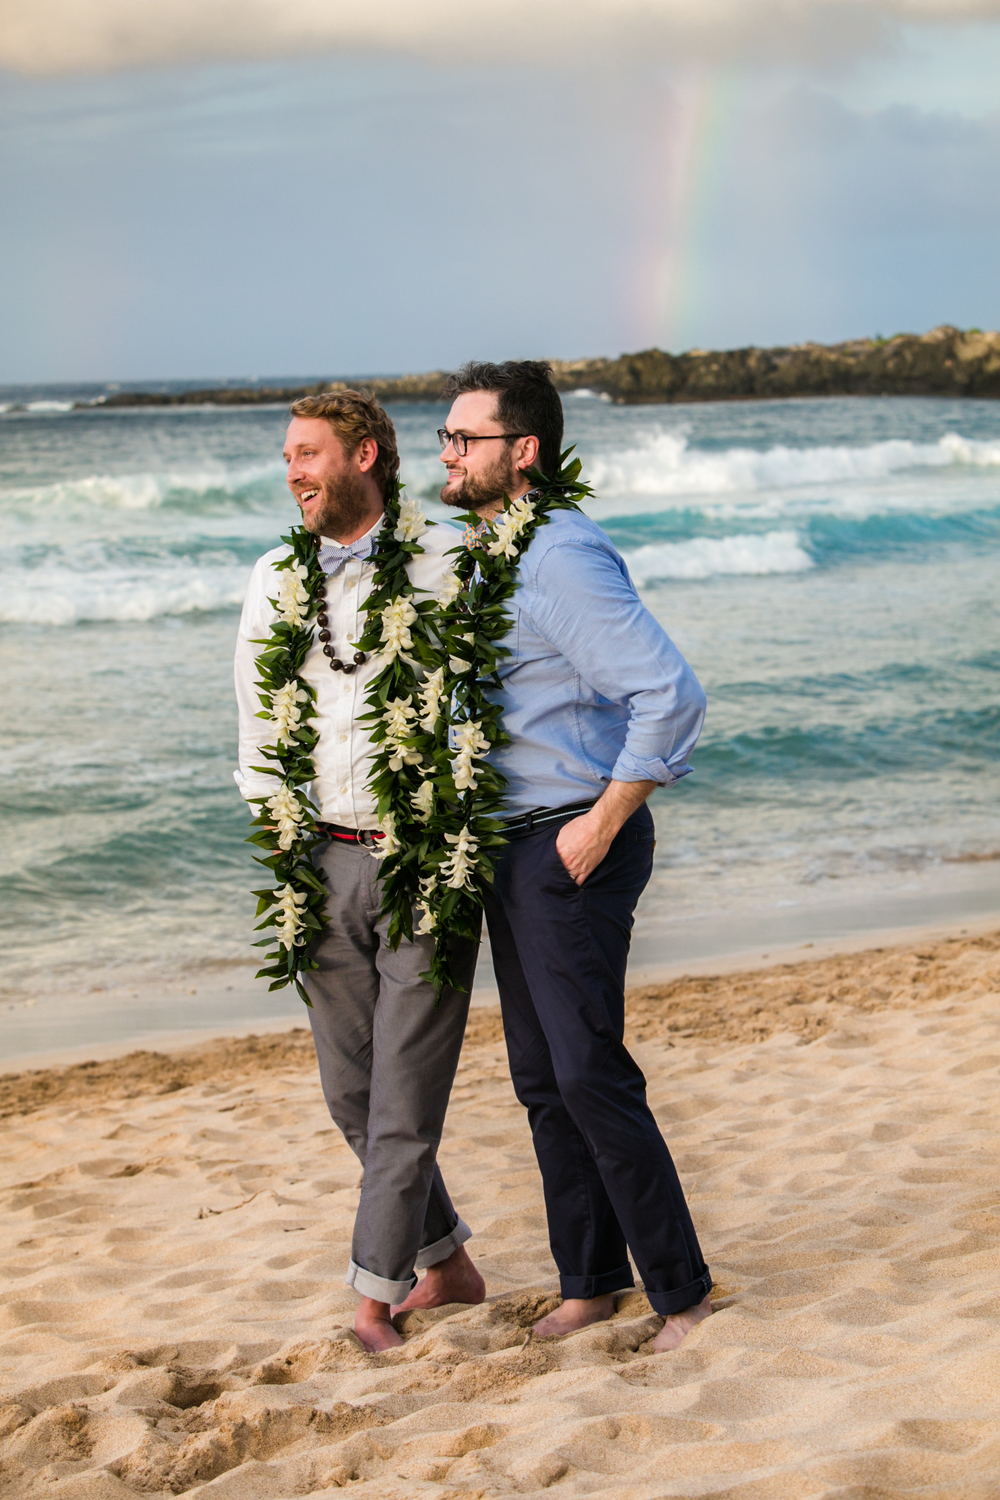 Lisa25 Wedding Photography walking on beach with rainbow in background